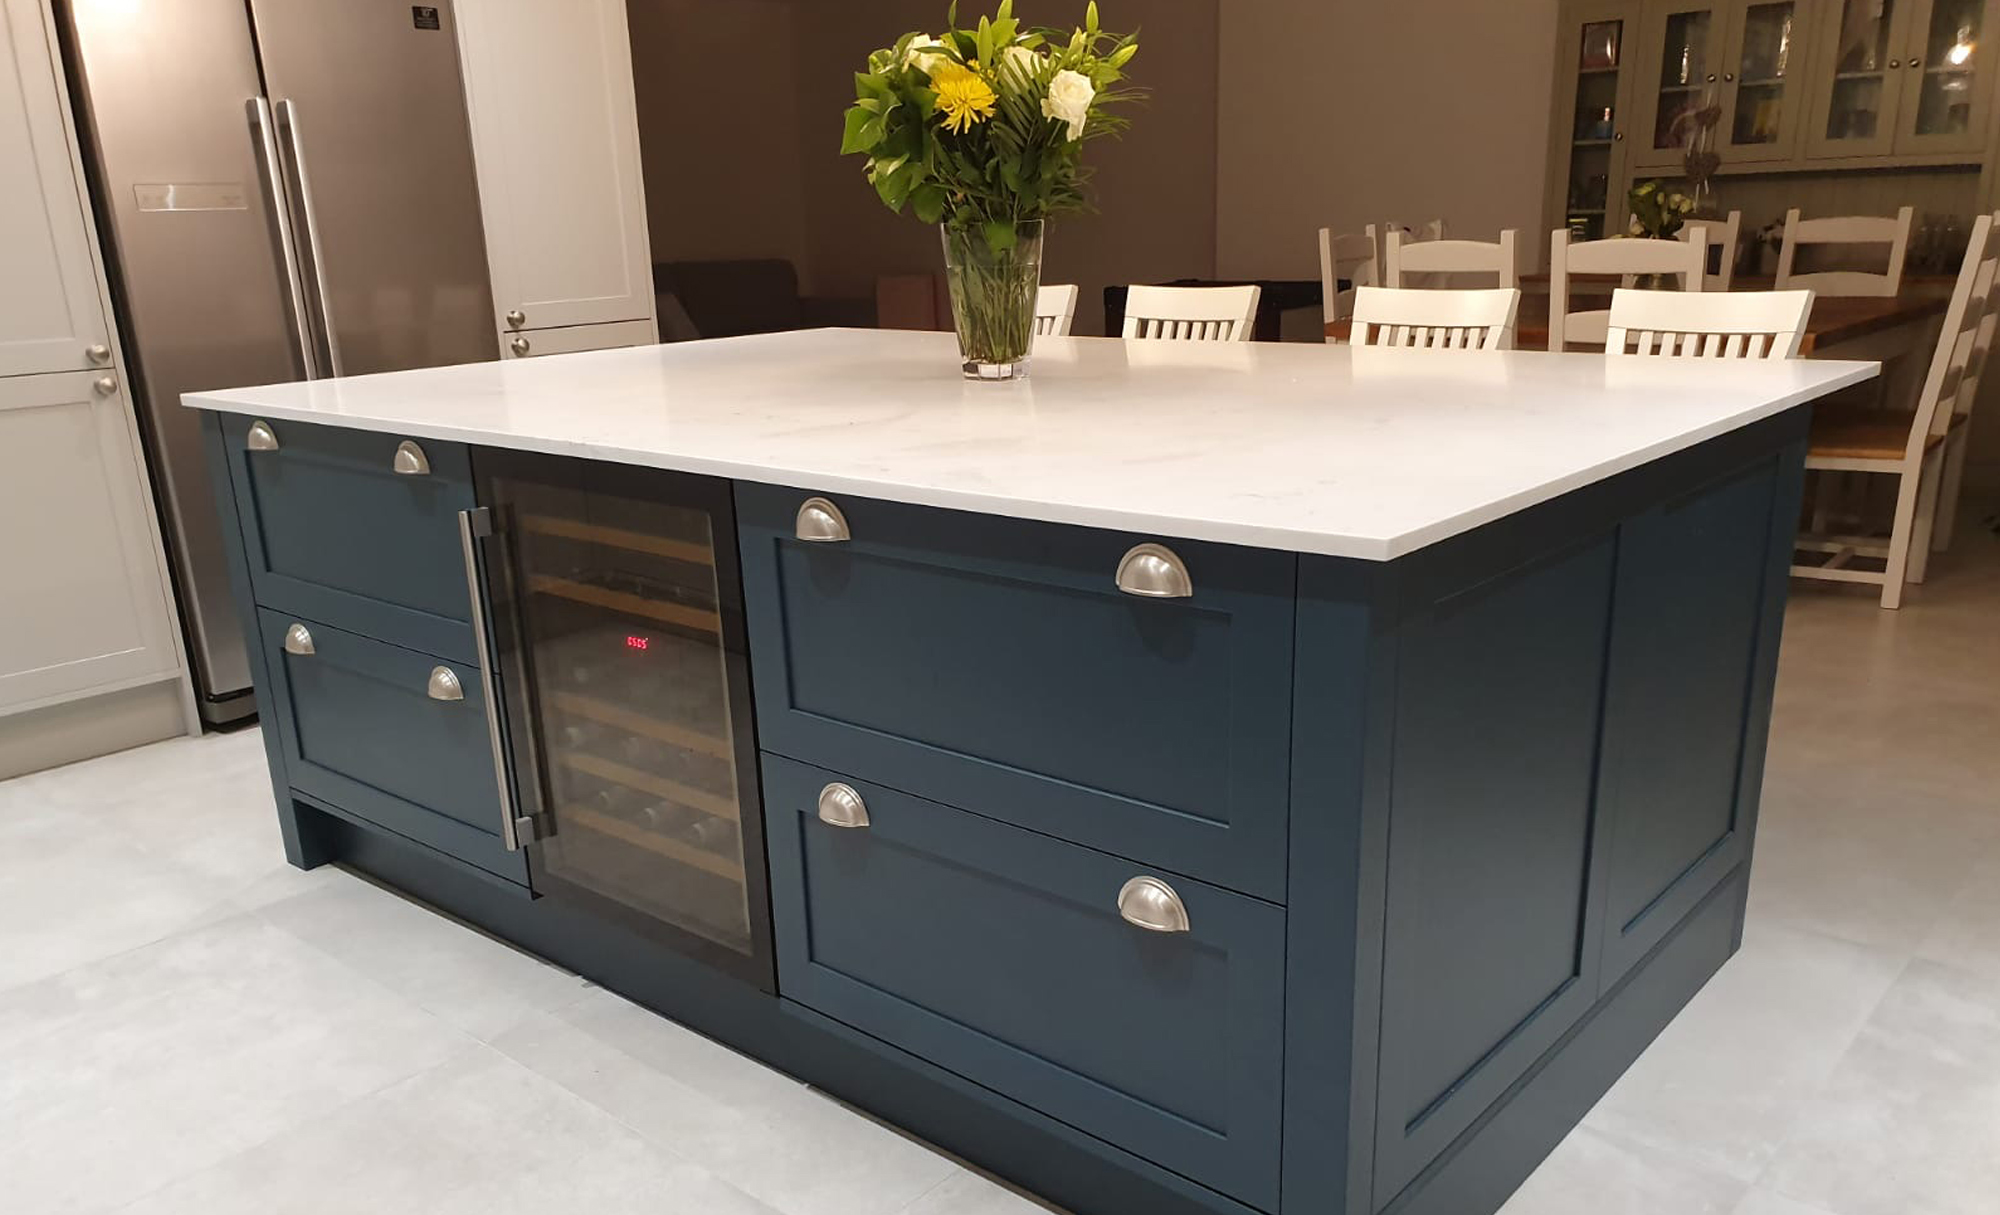 Aldana Light Grey & Marine Kitchen by Mill Town Kitchens Island